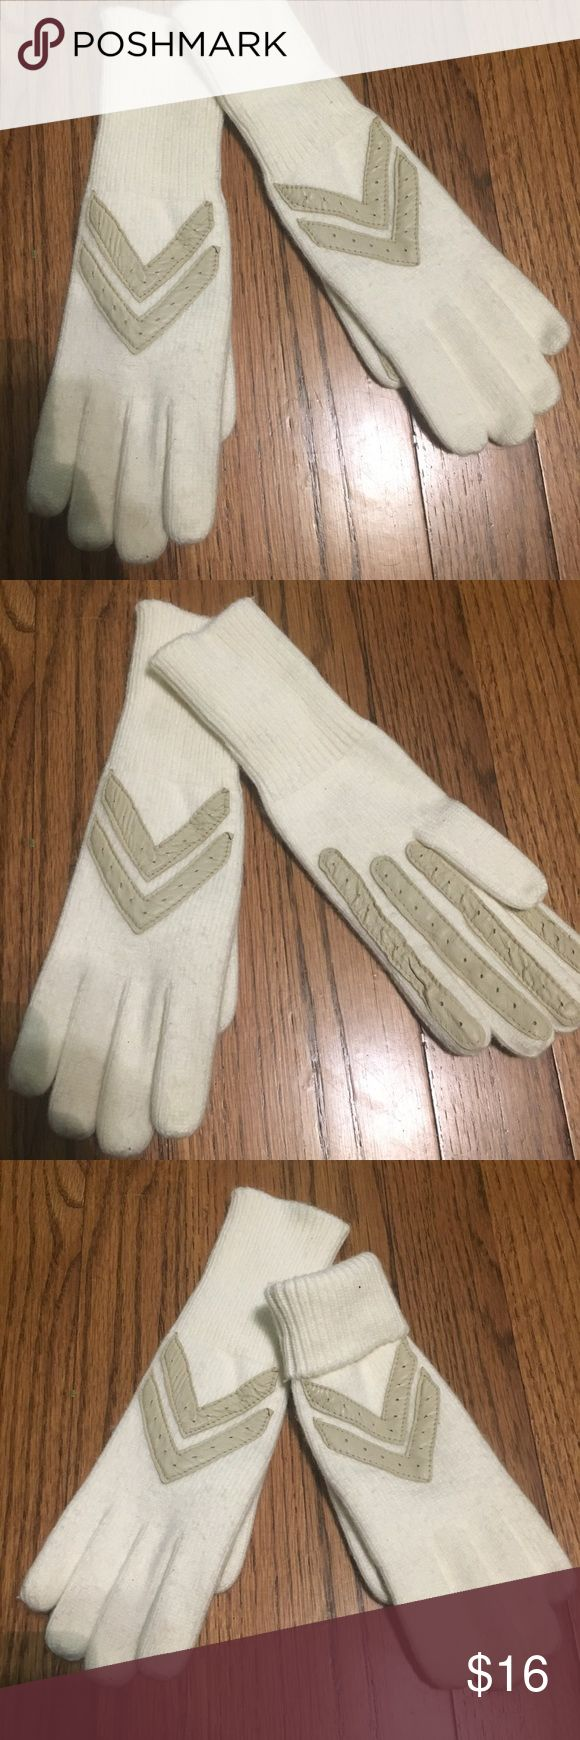 Women's gloves Women's withe/cream gloves. New condition Accessories Gloves & Mittens